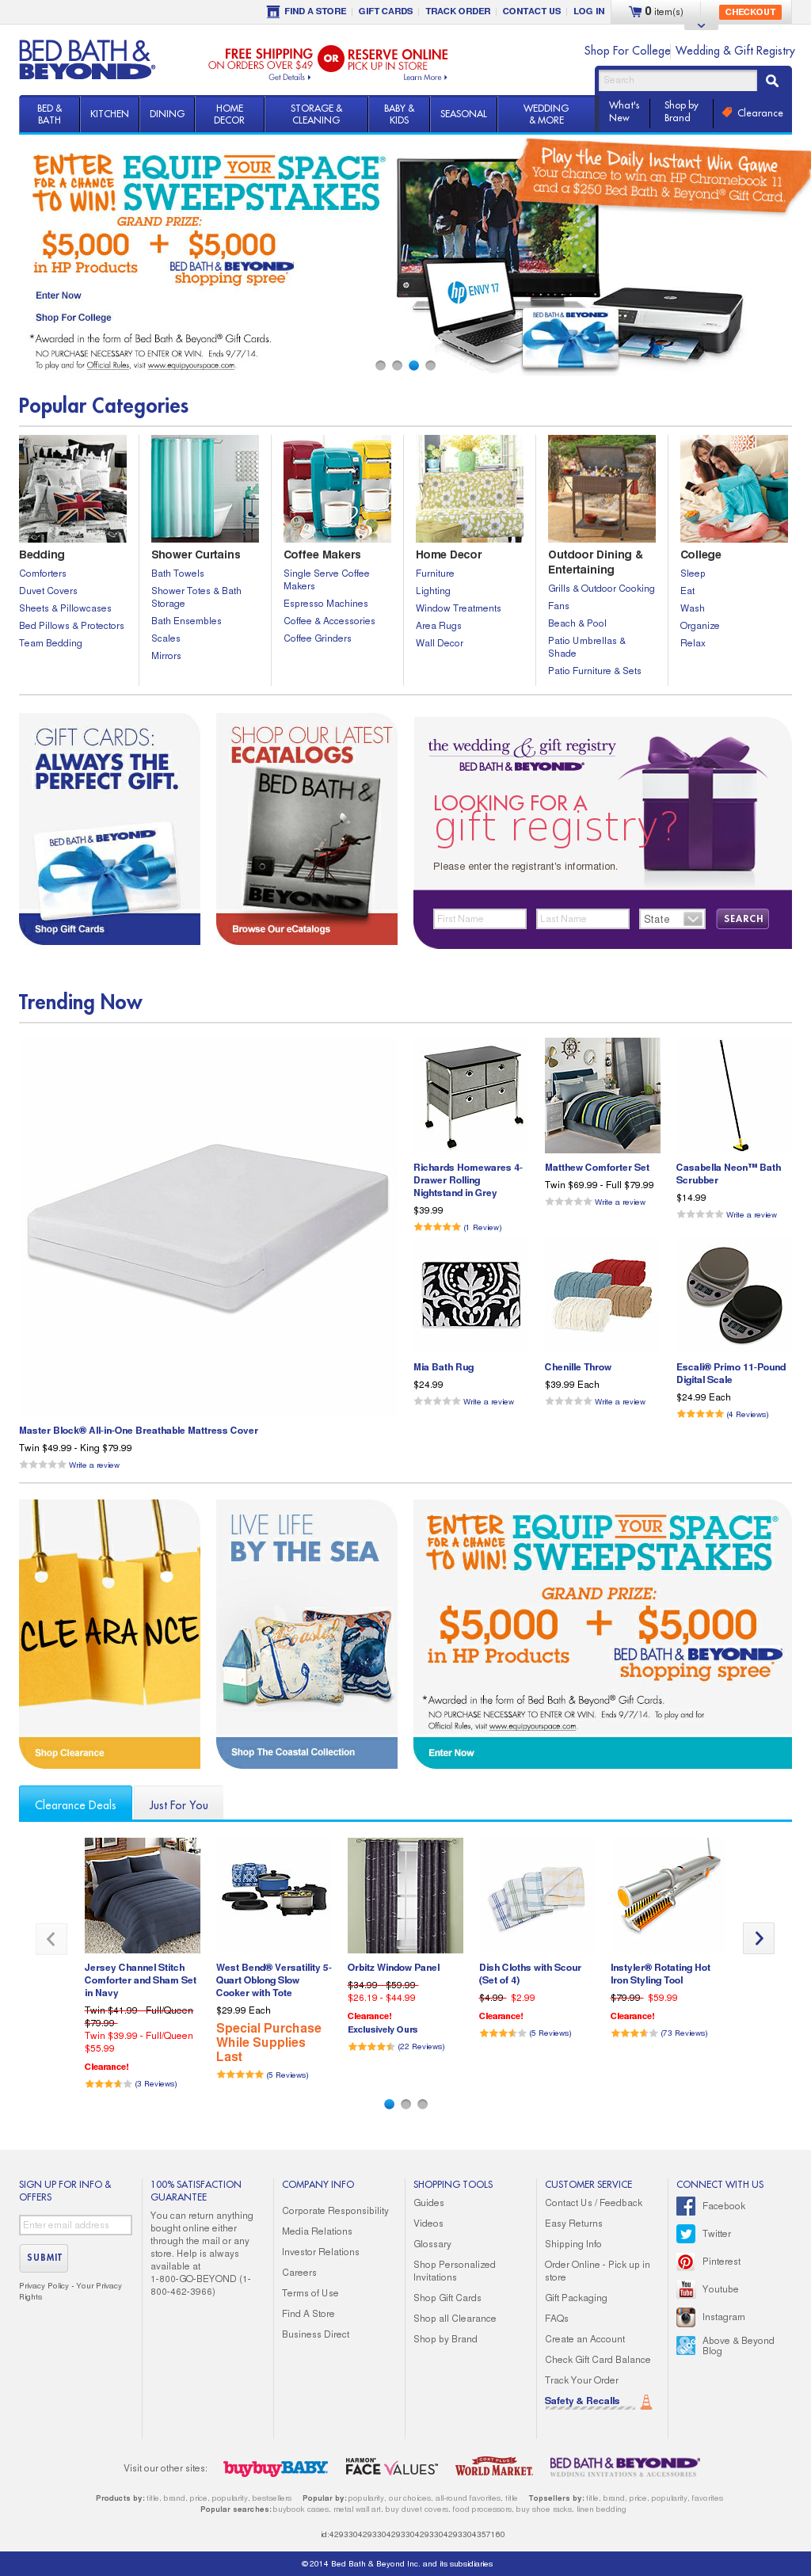 Bed Bath Beyond Profile and Review